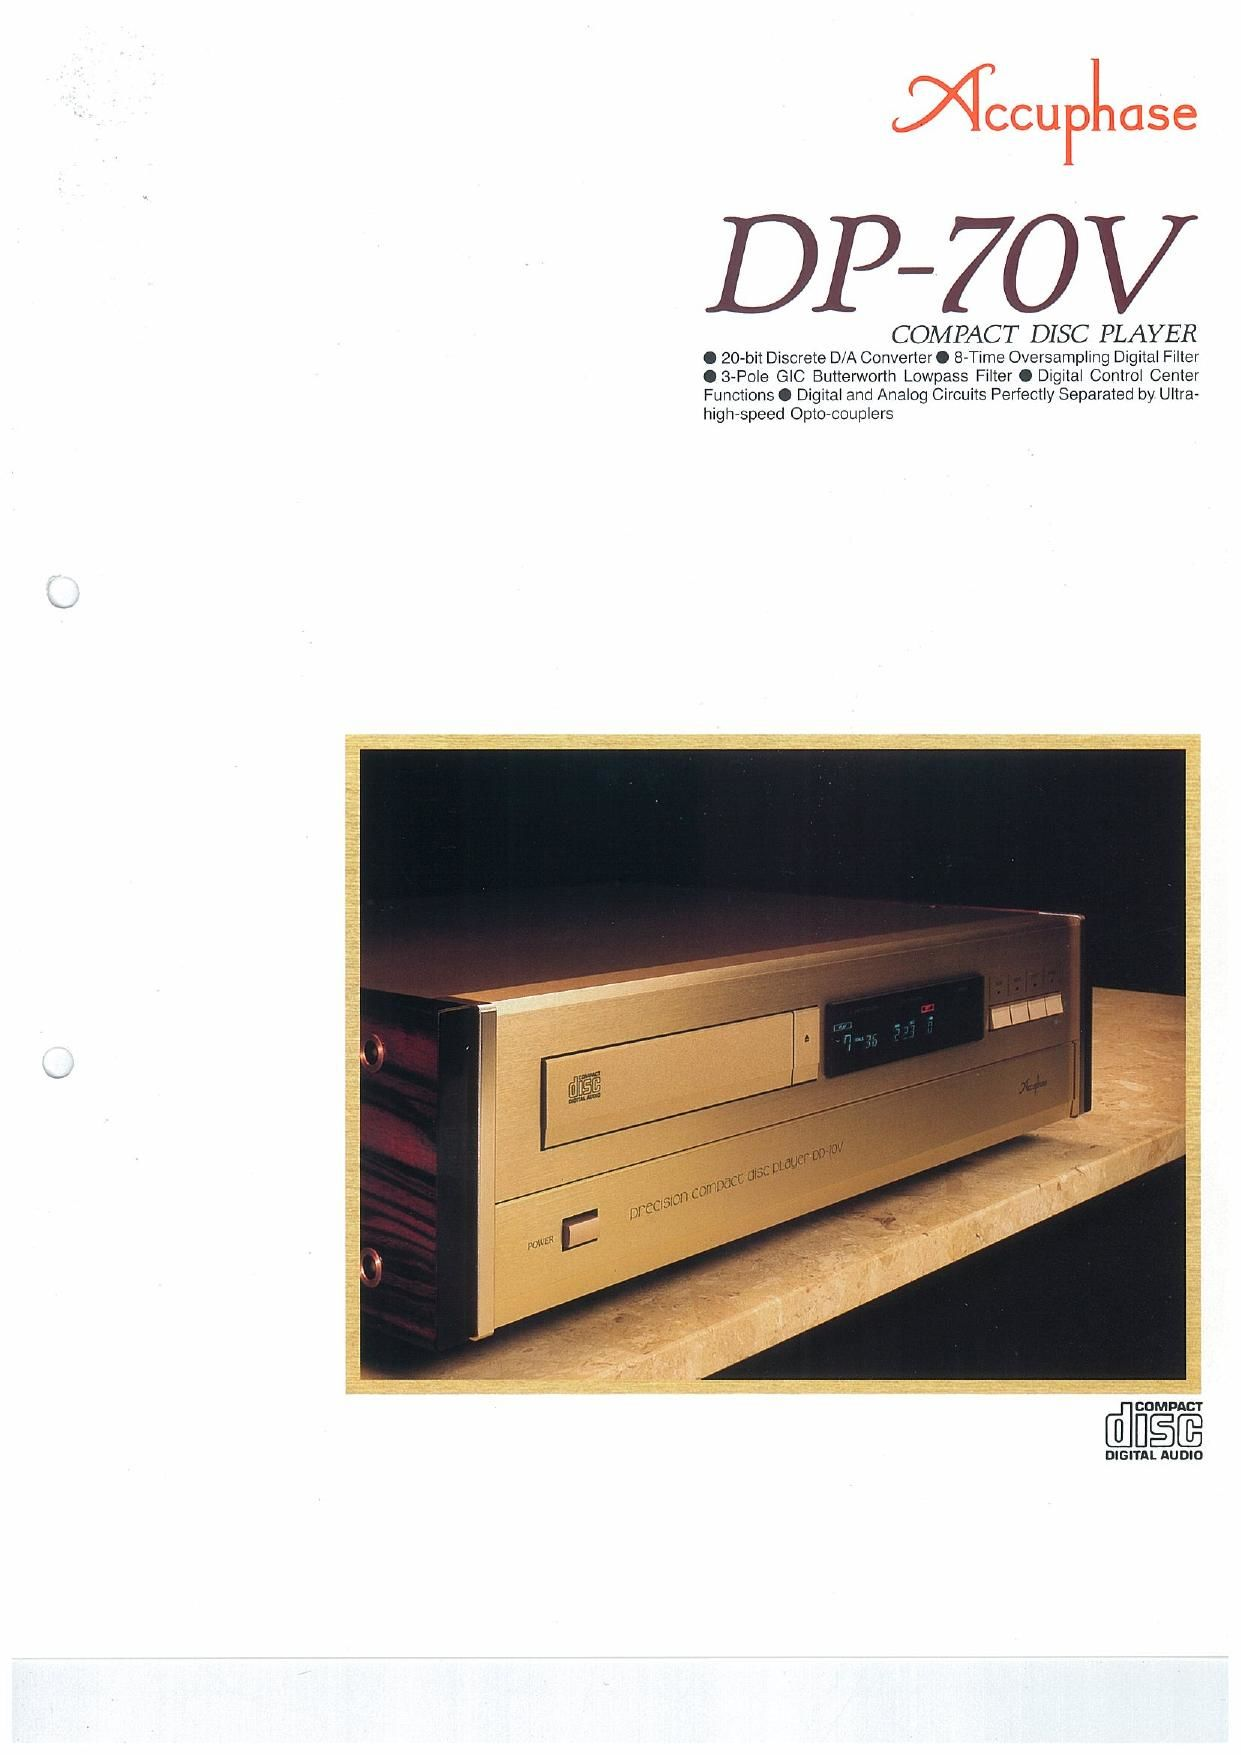 Accuphase DP 70 V Brochure